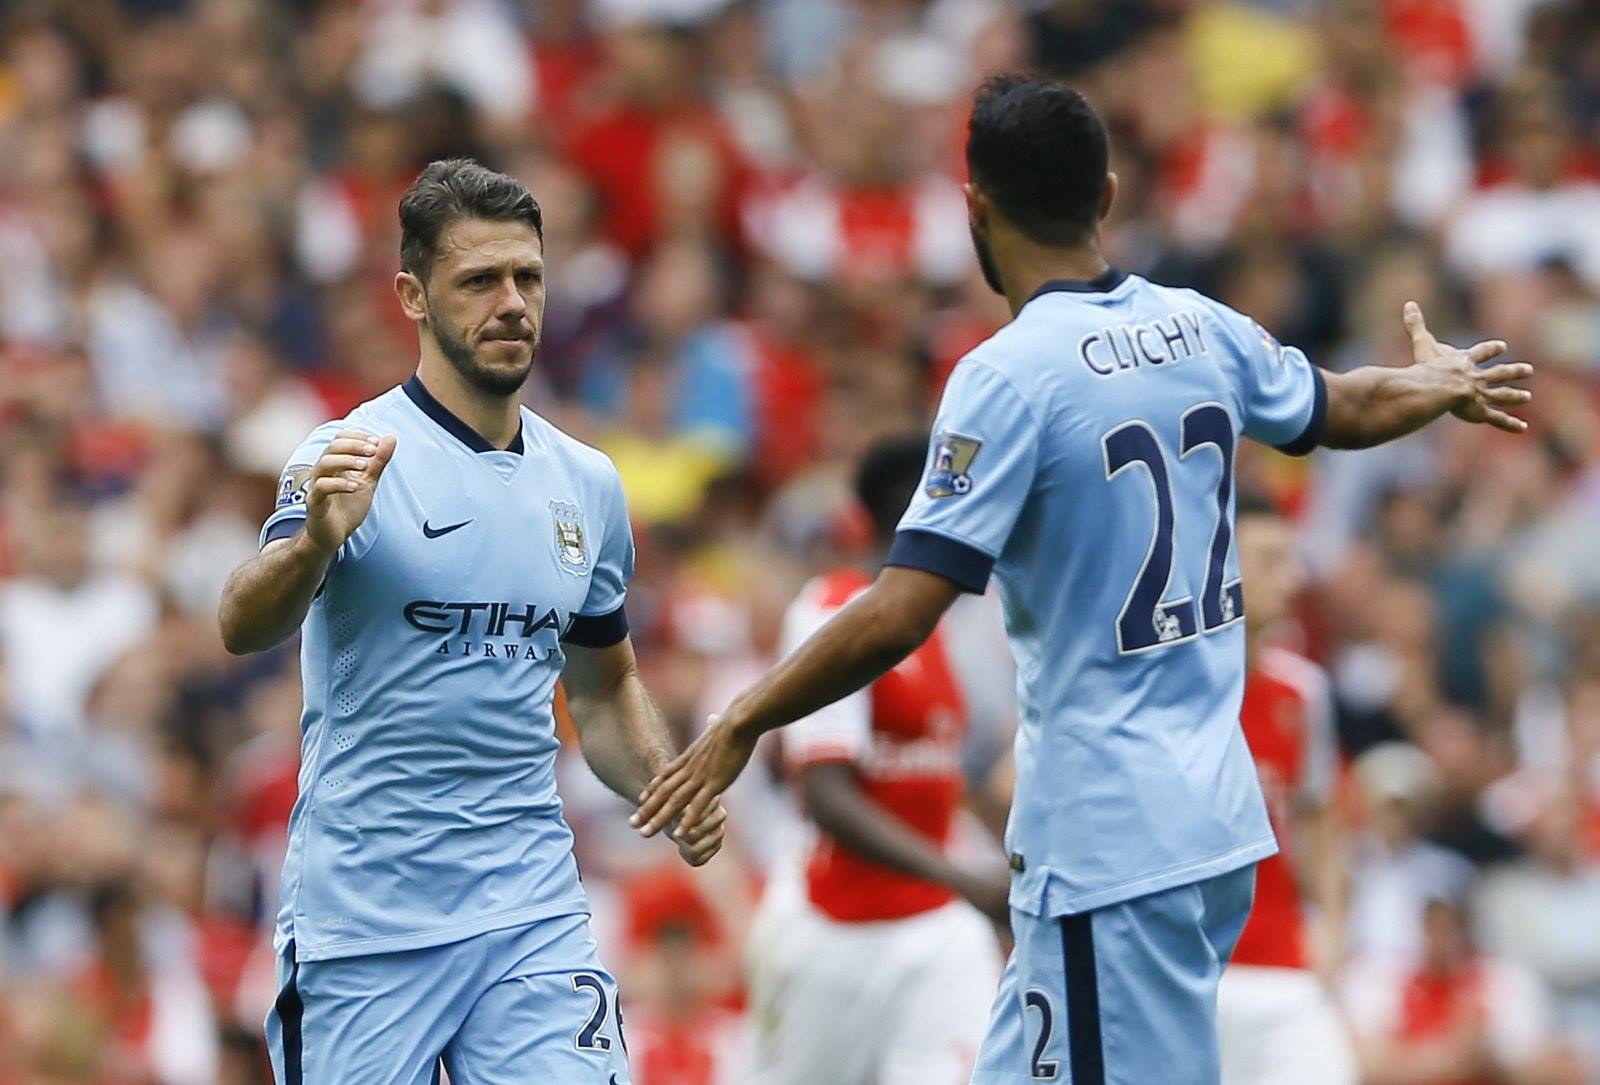 Well done - City scorer Demichelis and the excellent Clichy helped the Sky Blues to a deserved draw. Courtesy@MCFC